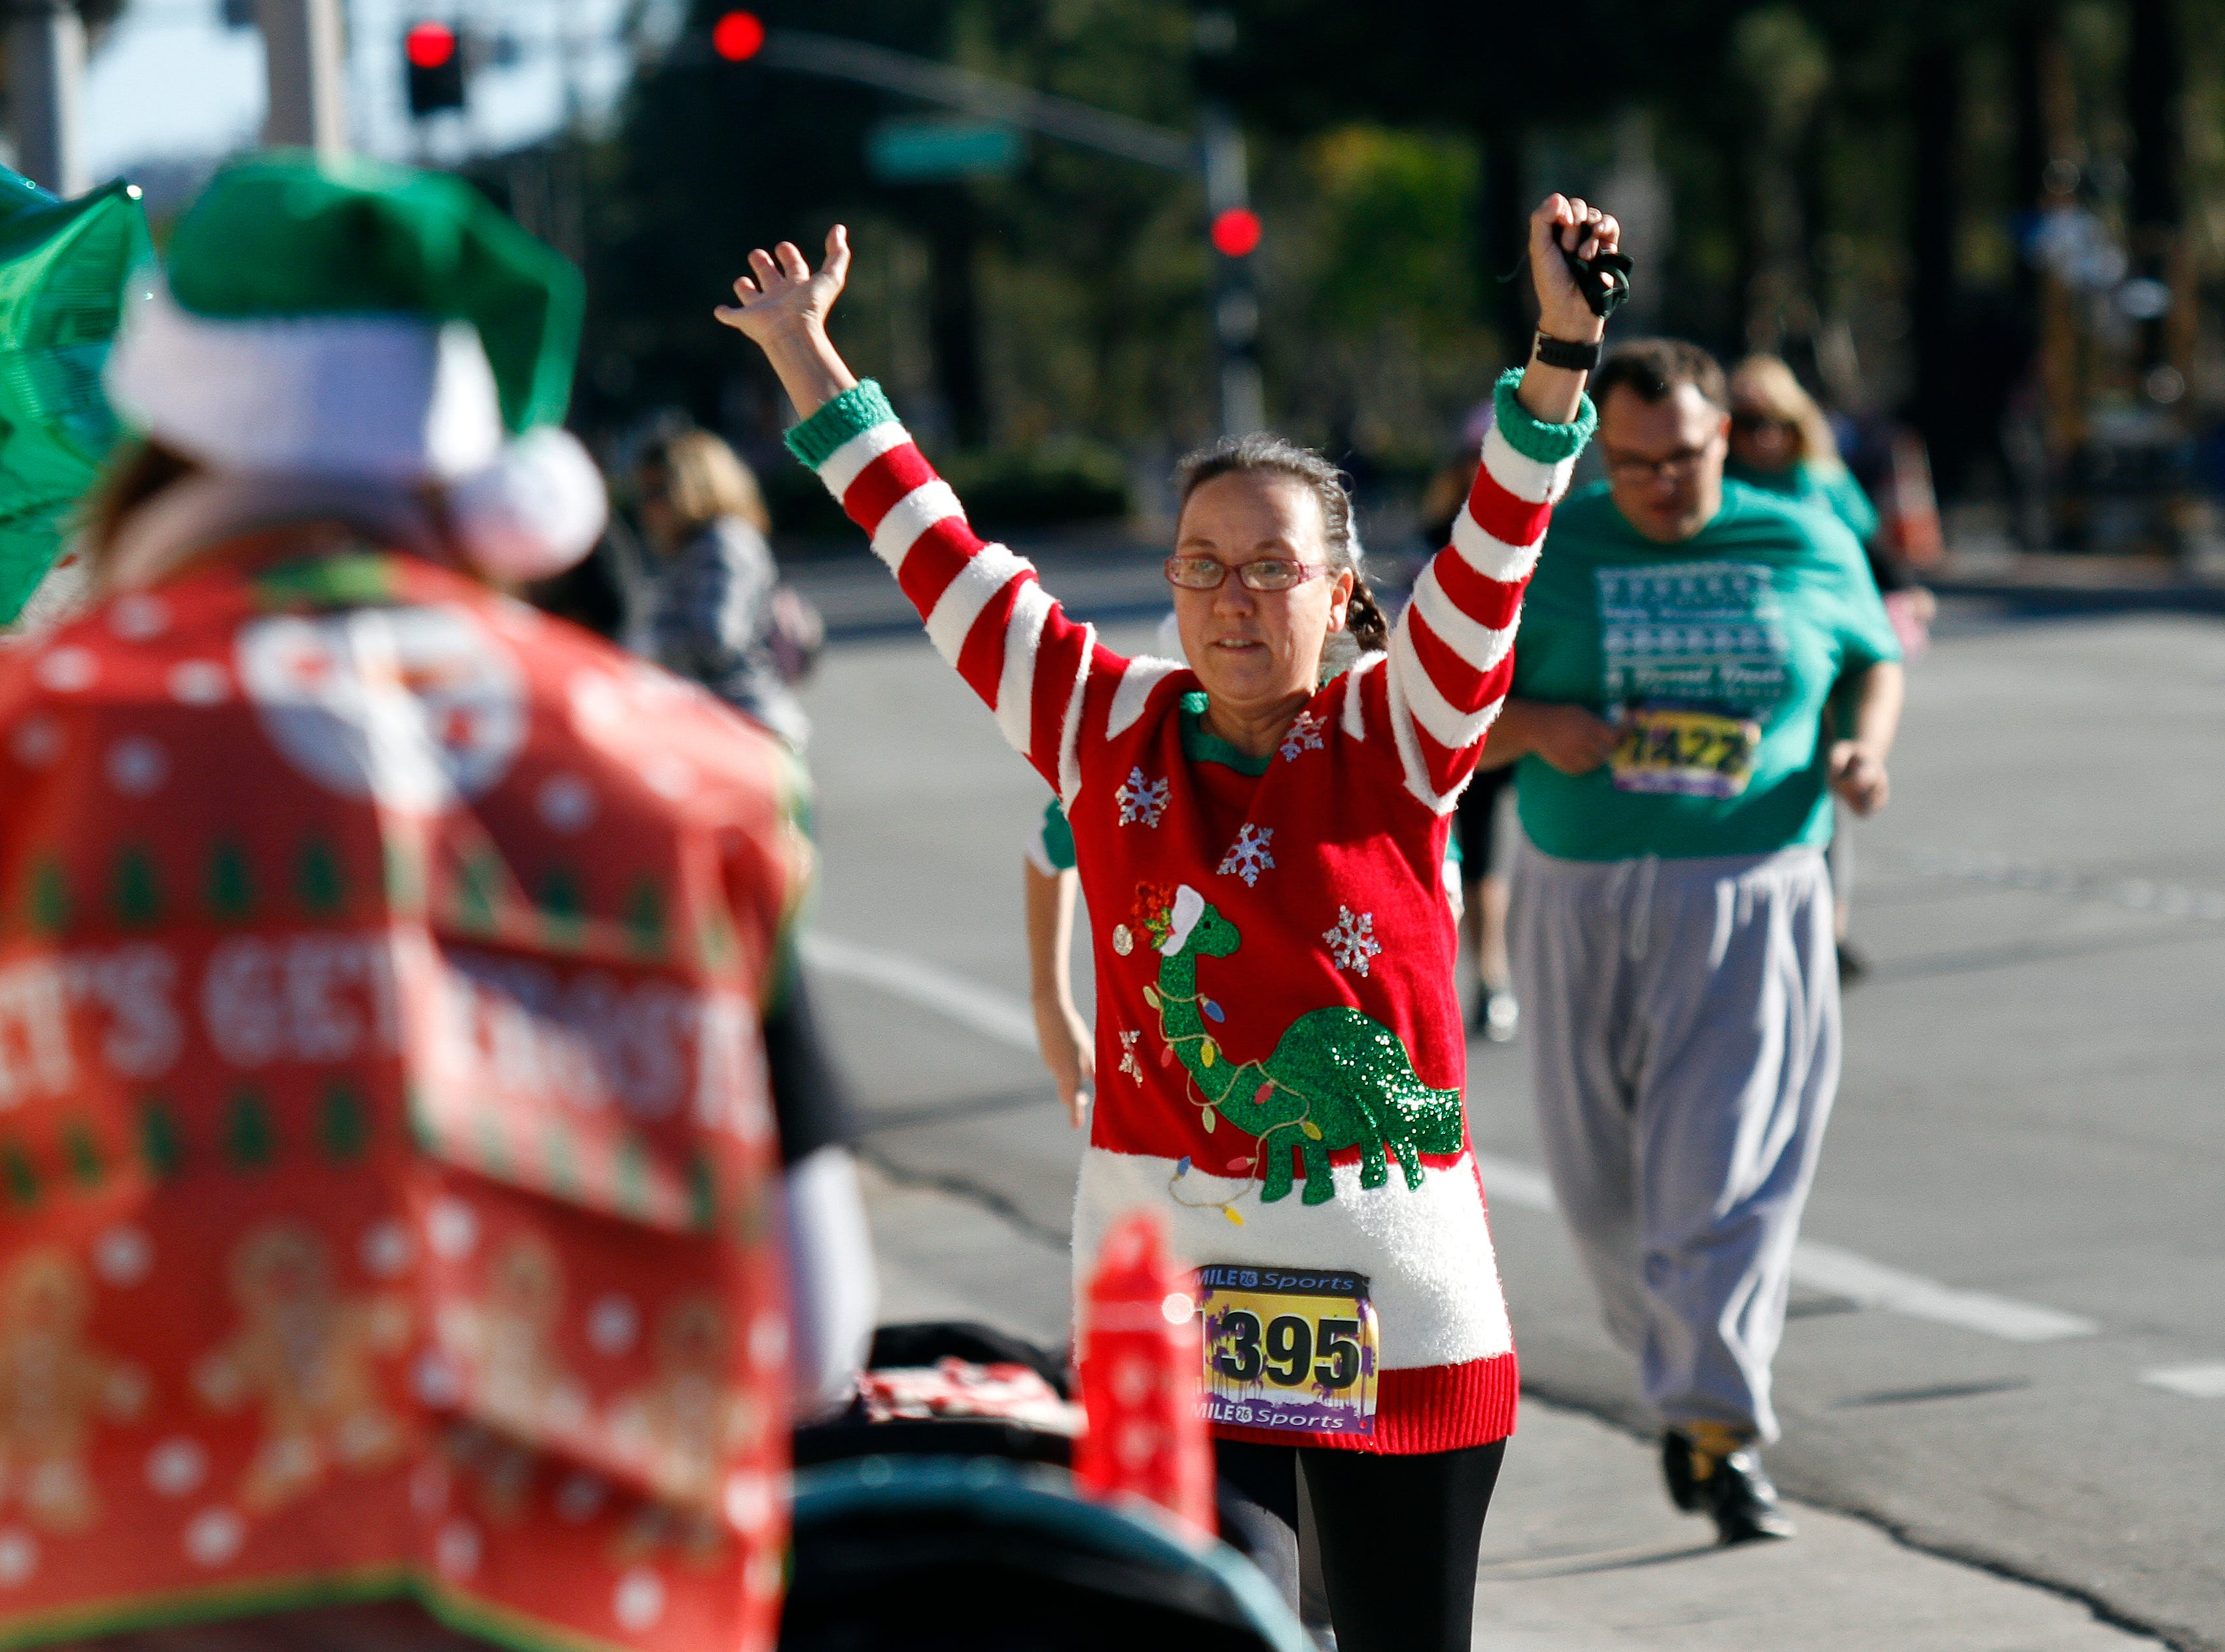 Corey Branchflower, a running coach for a special needs group called Team in His Image from the Oxnard Calvary Chapel, celebrates with her team at the end of their run Saturday during Christmas festivities in Camarillo.